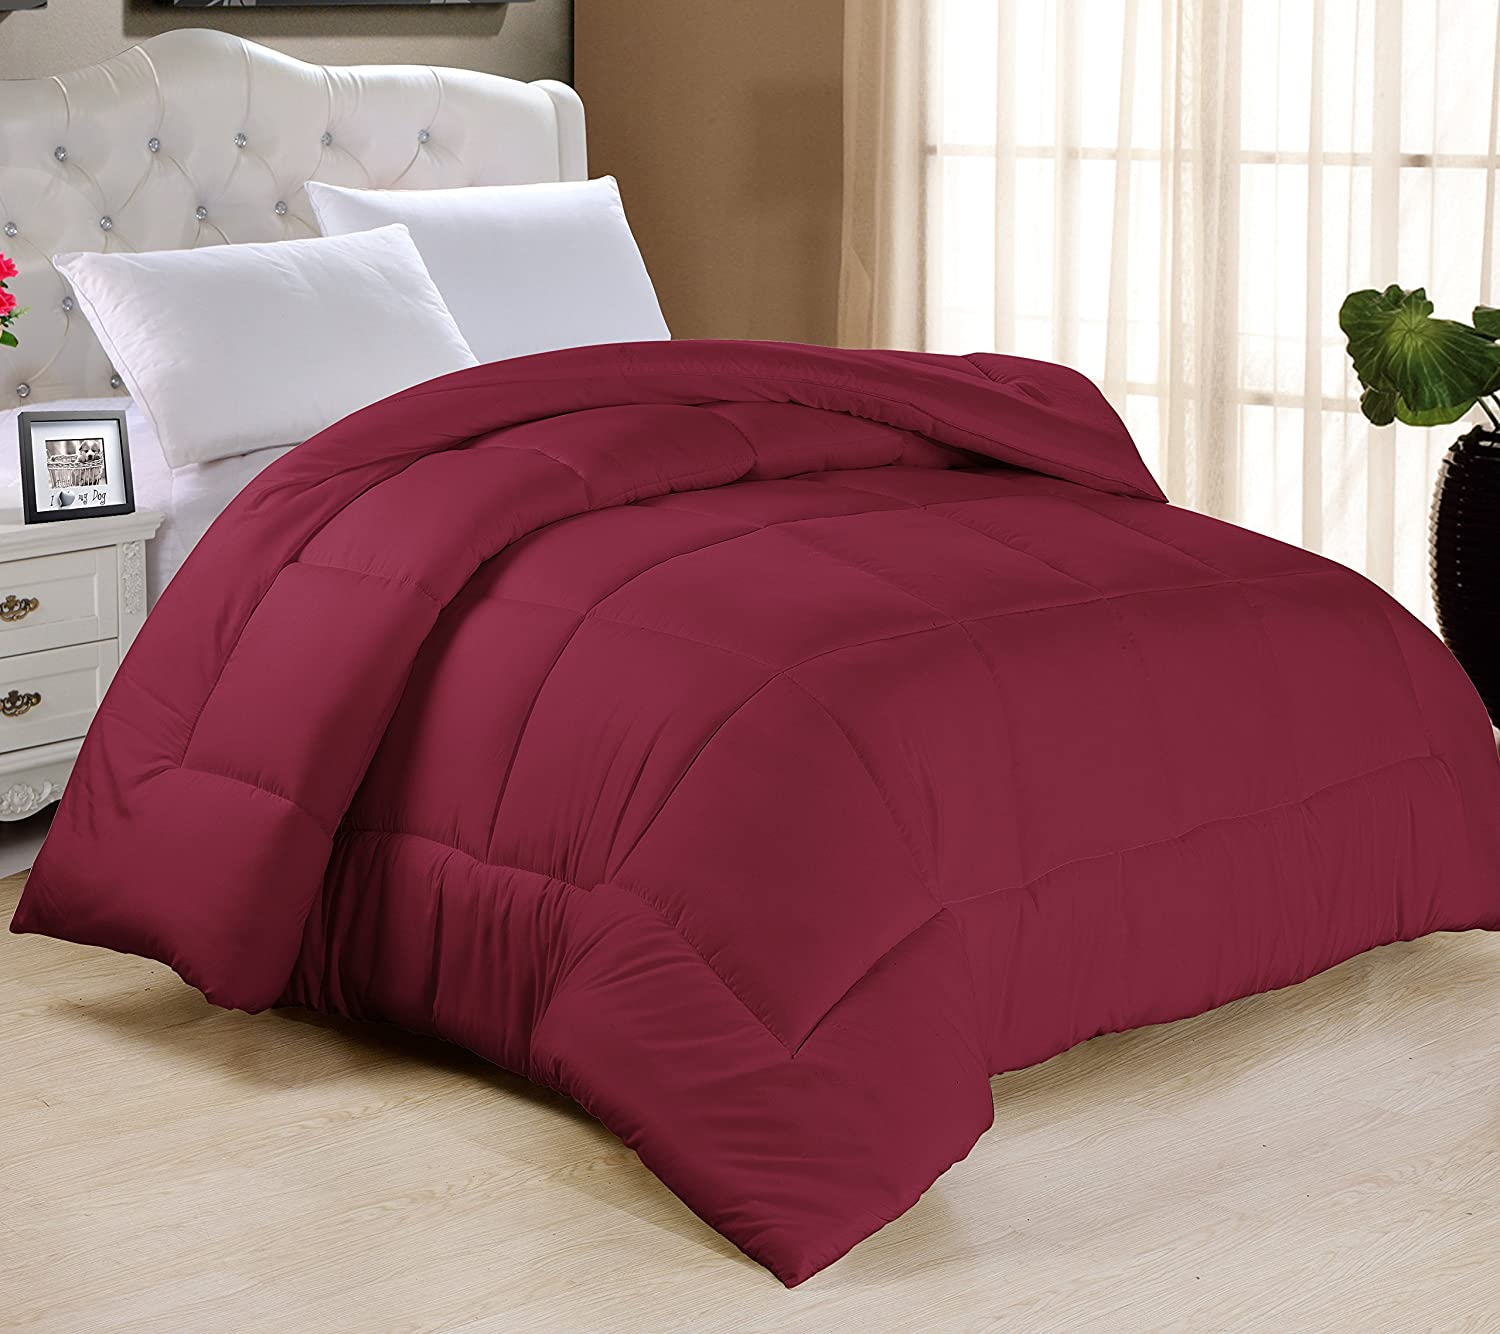 "Light-Warmth Goose Down-Alternative Comforter, King 104"" x 90"", Burgundy"